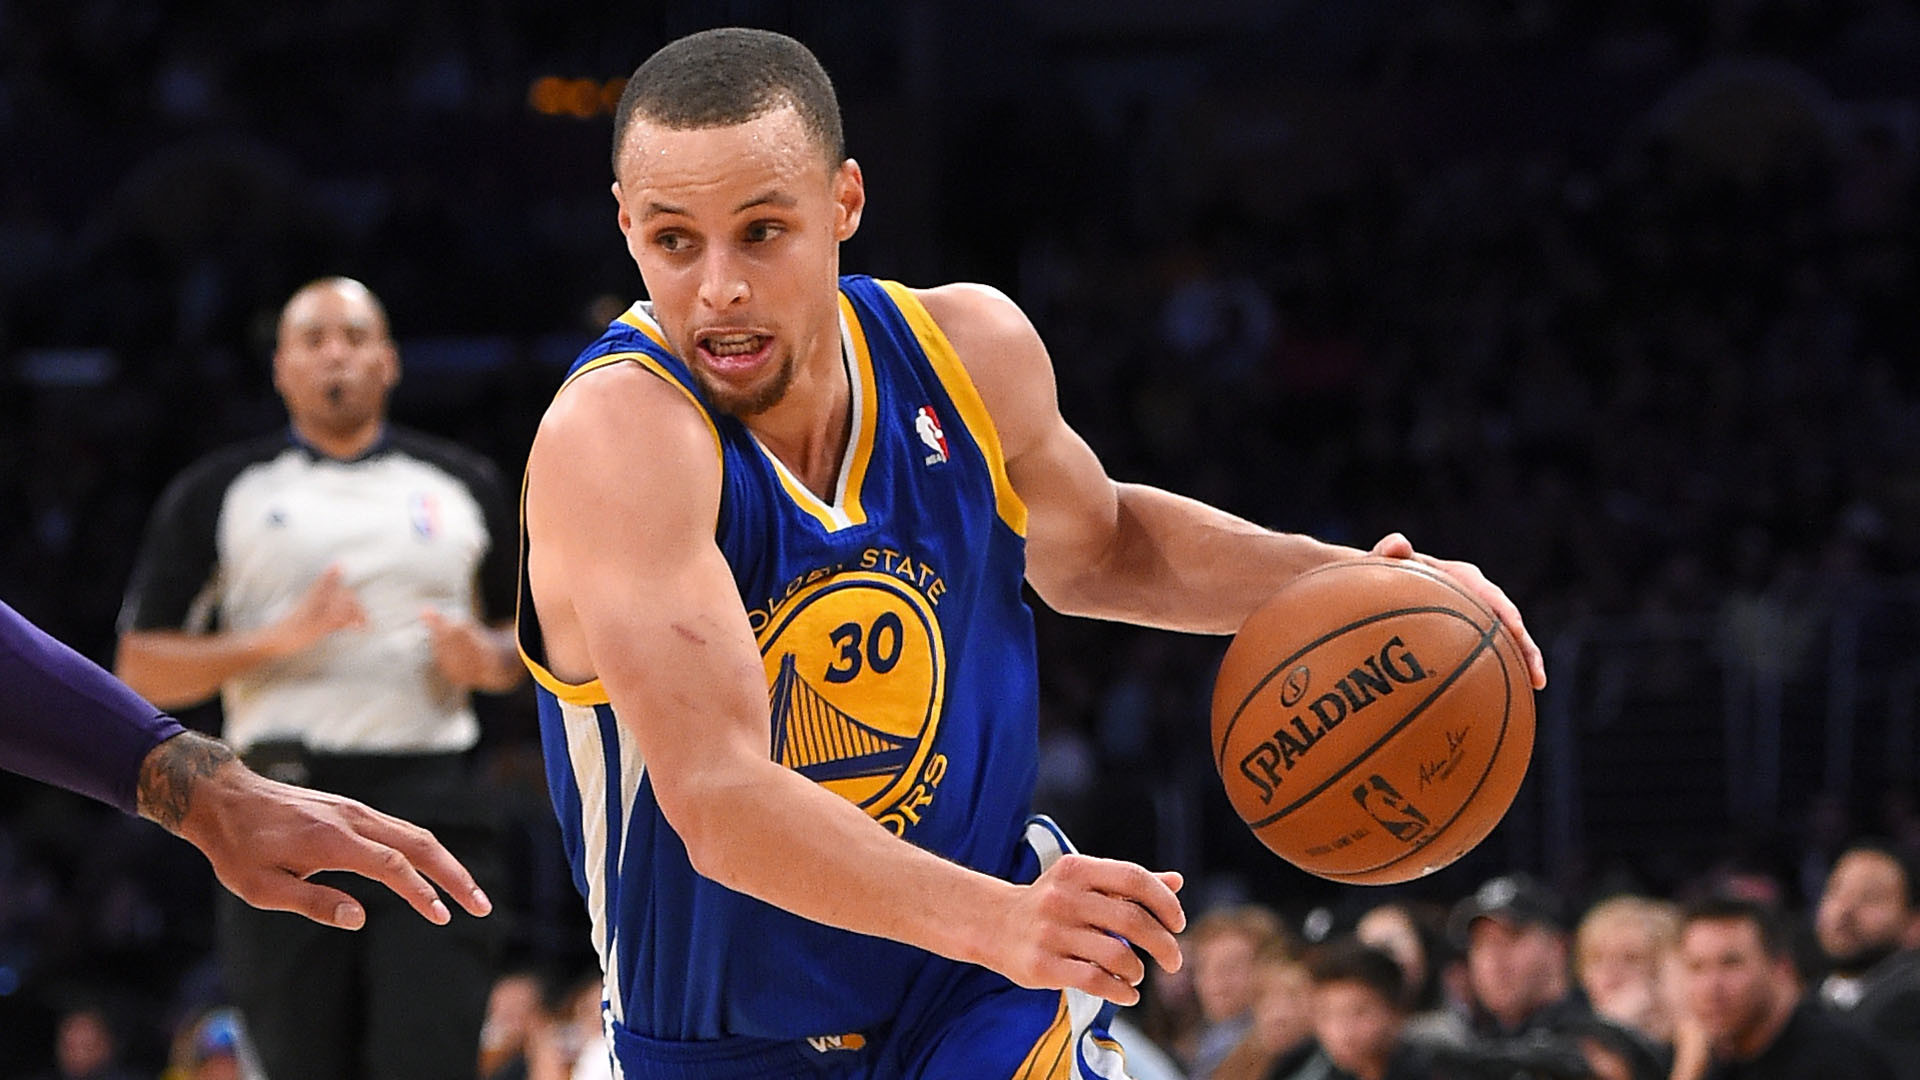 stephen curry images and pictures (Handy Birds 1920 x 1080) | ololoshka |  Pinterest | Stephen curry images and Stephen curry